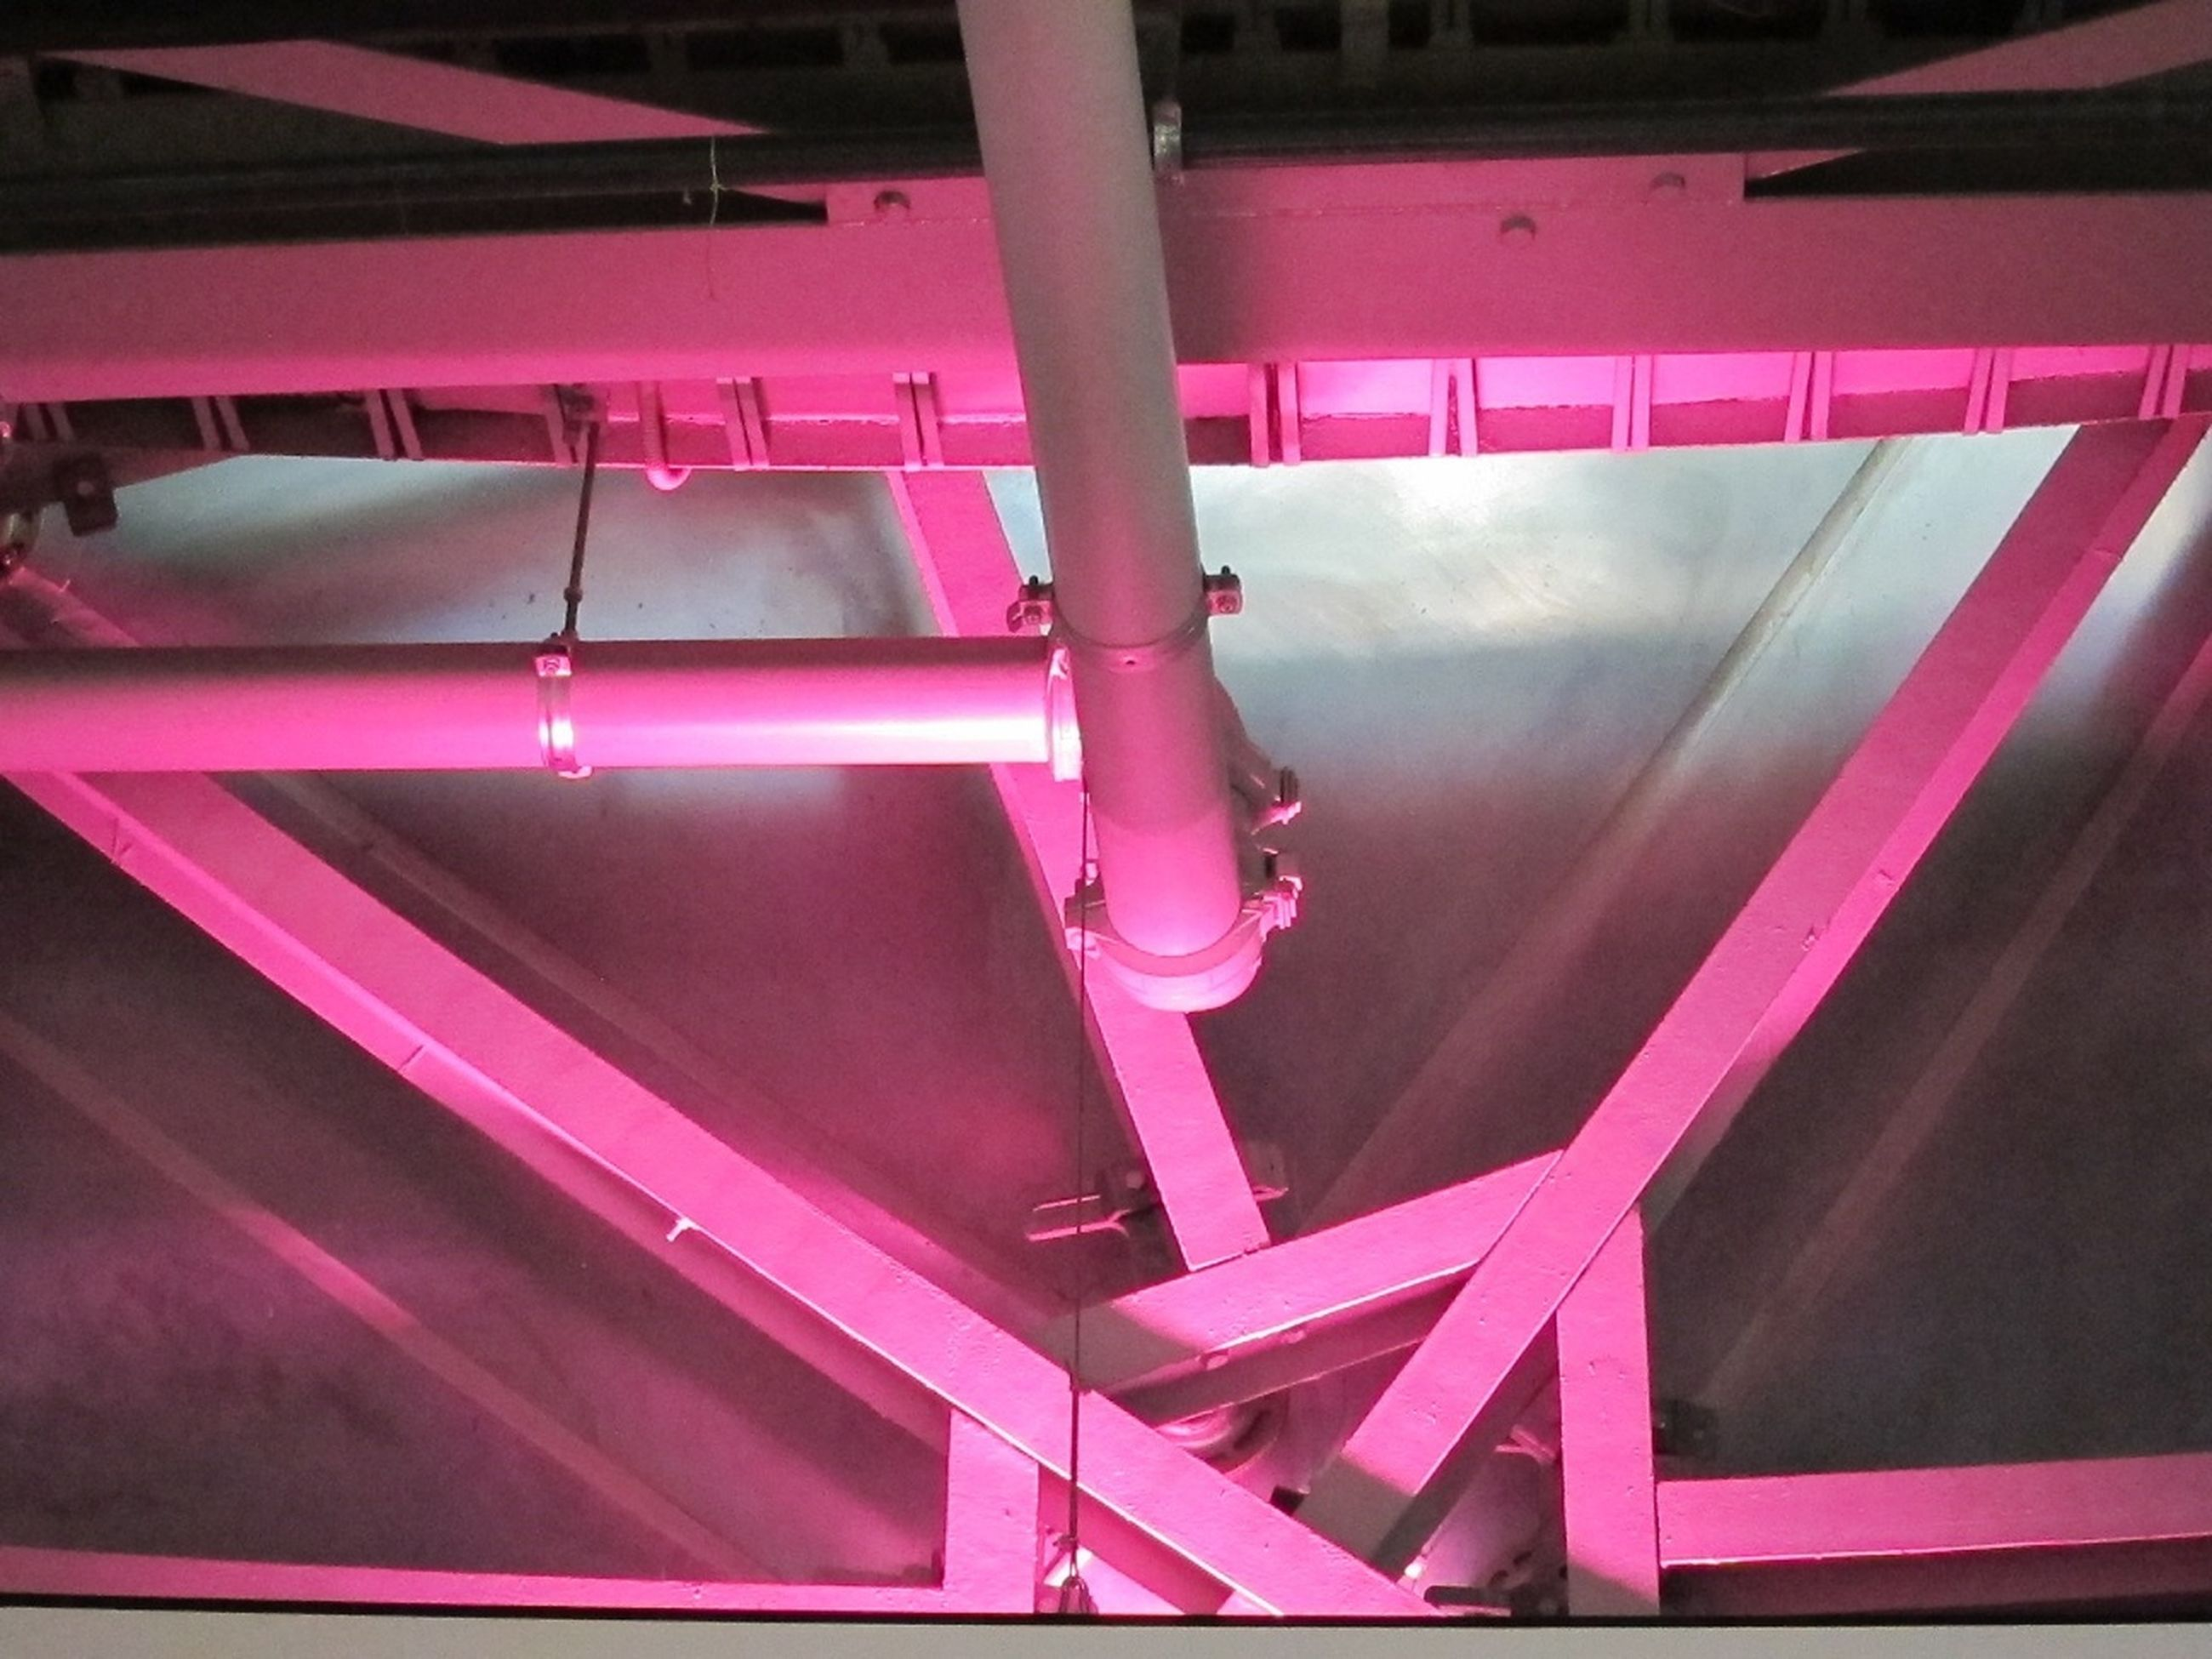 red, indoors, metal, low angle view, no people, close-up, high angle view, built structure, in a row, hanging, multi colored, railing, architecture, metallic, technology, equipment, day, arts culture and entertainment, pink color, industry